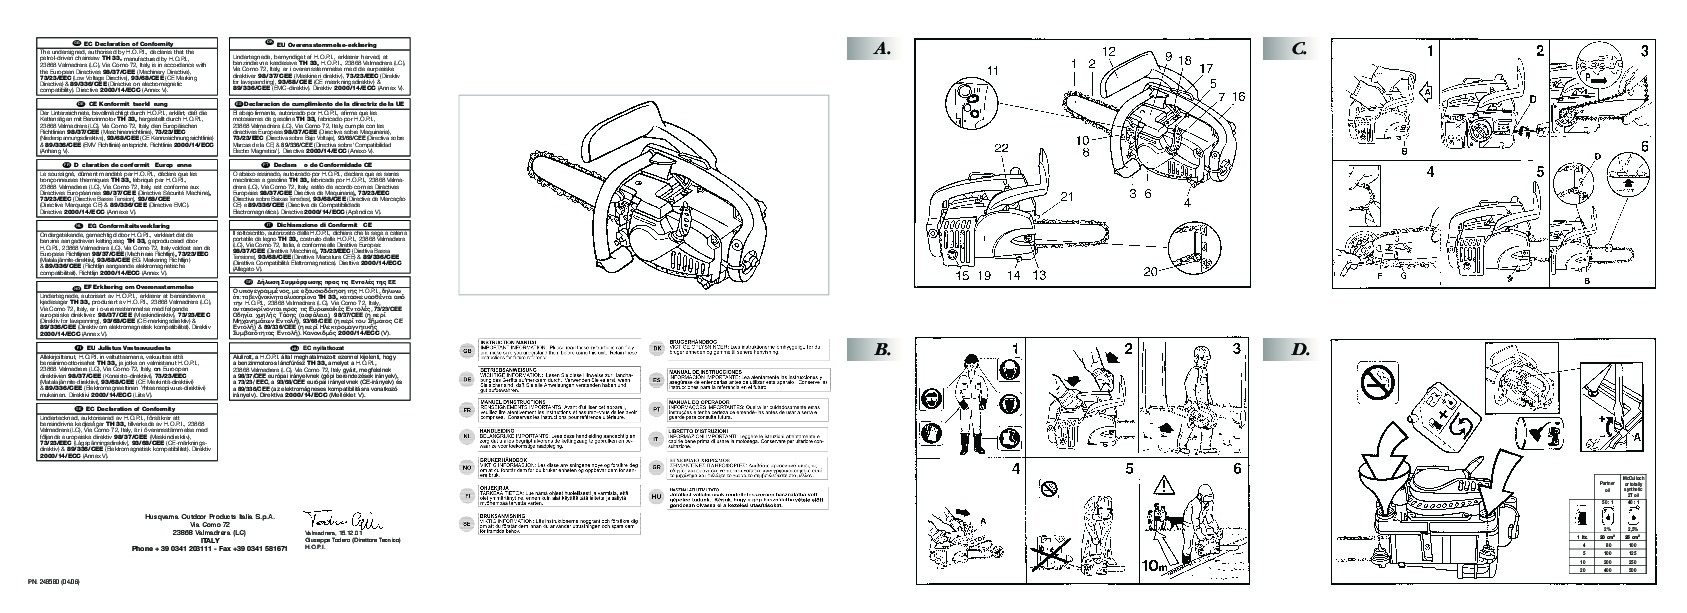 Mcculloch Electramac Em14e Chainsaw Manual